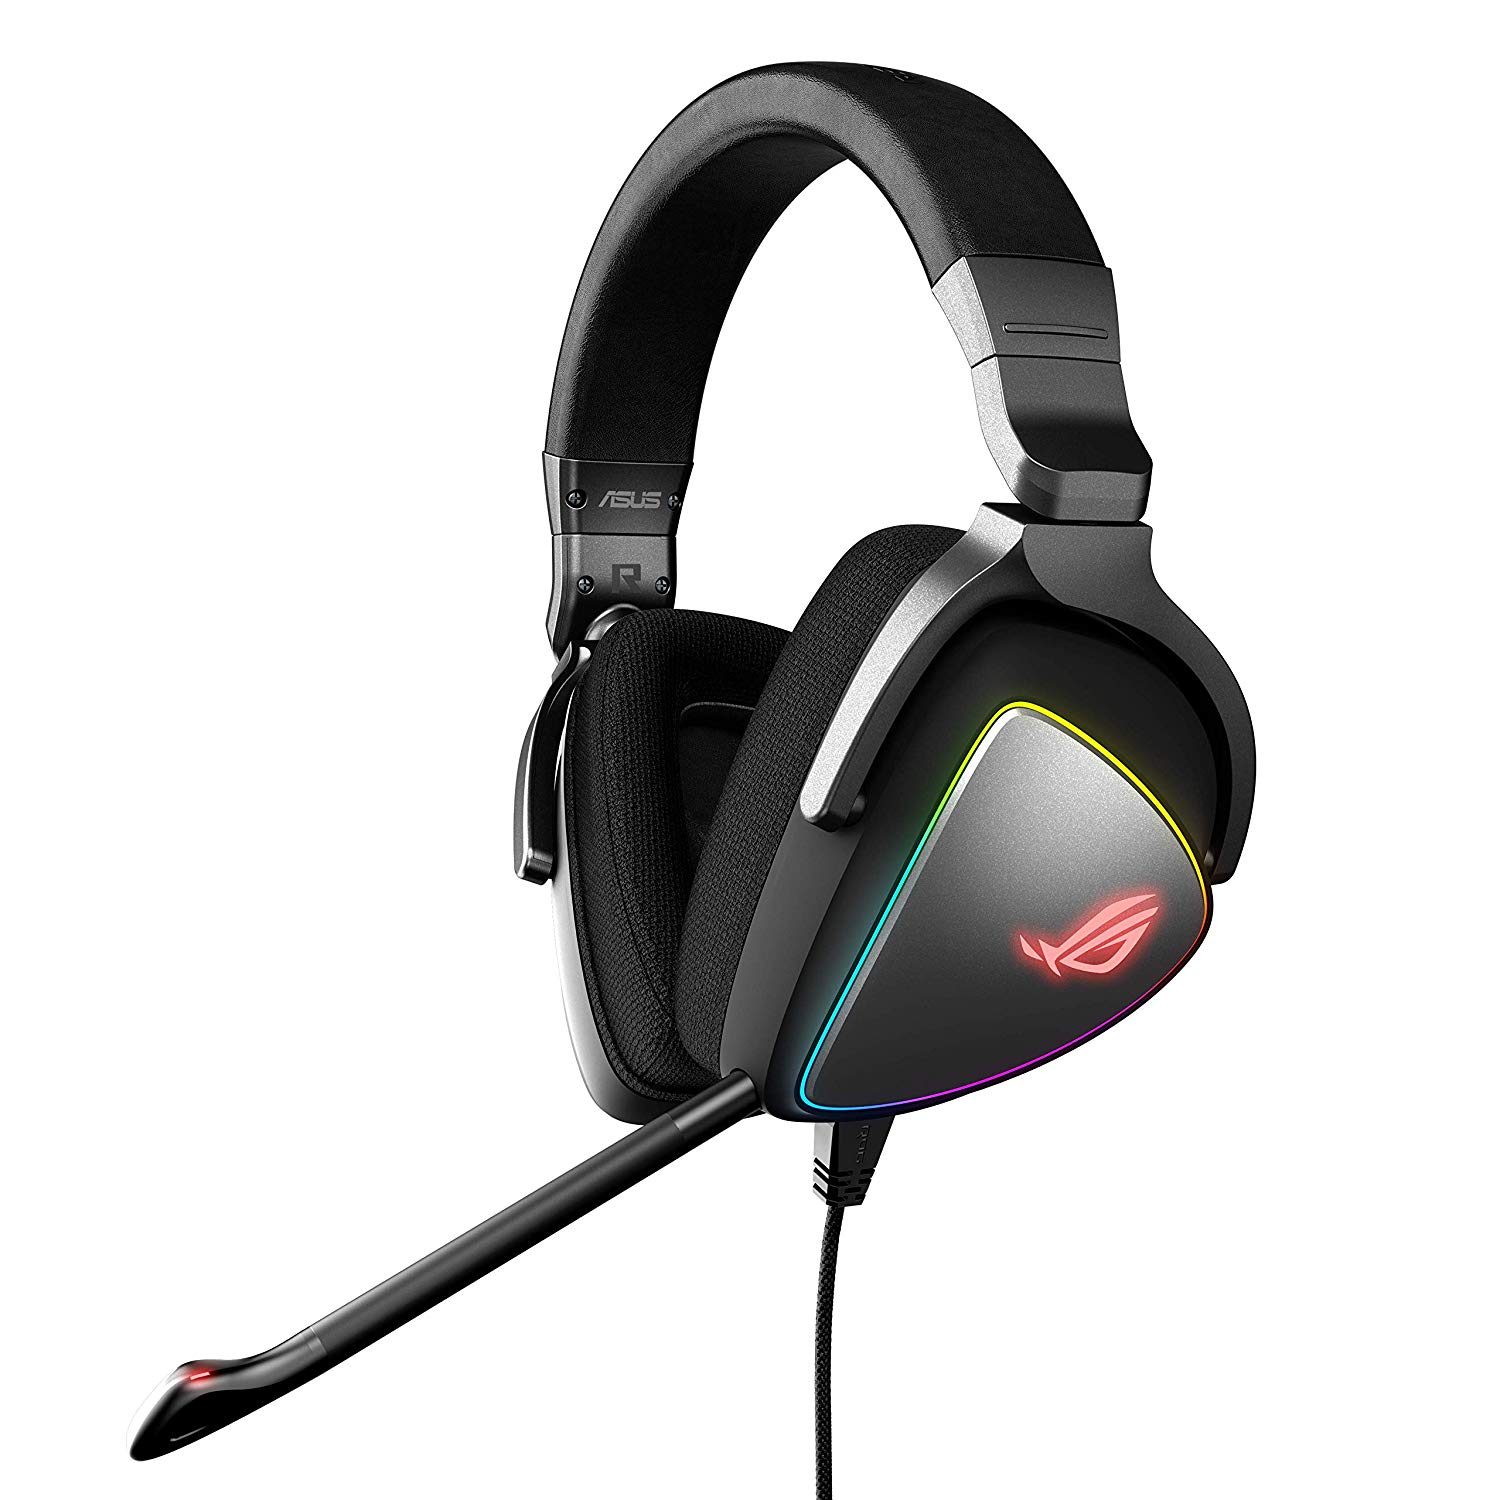 ASUS ROG Delta RGB gaming headset for £179.43